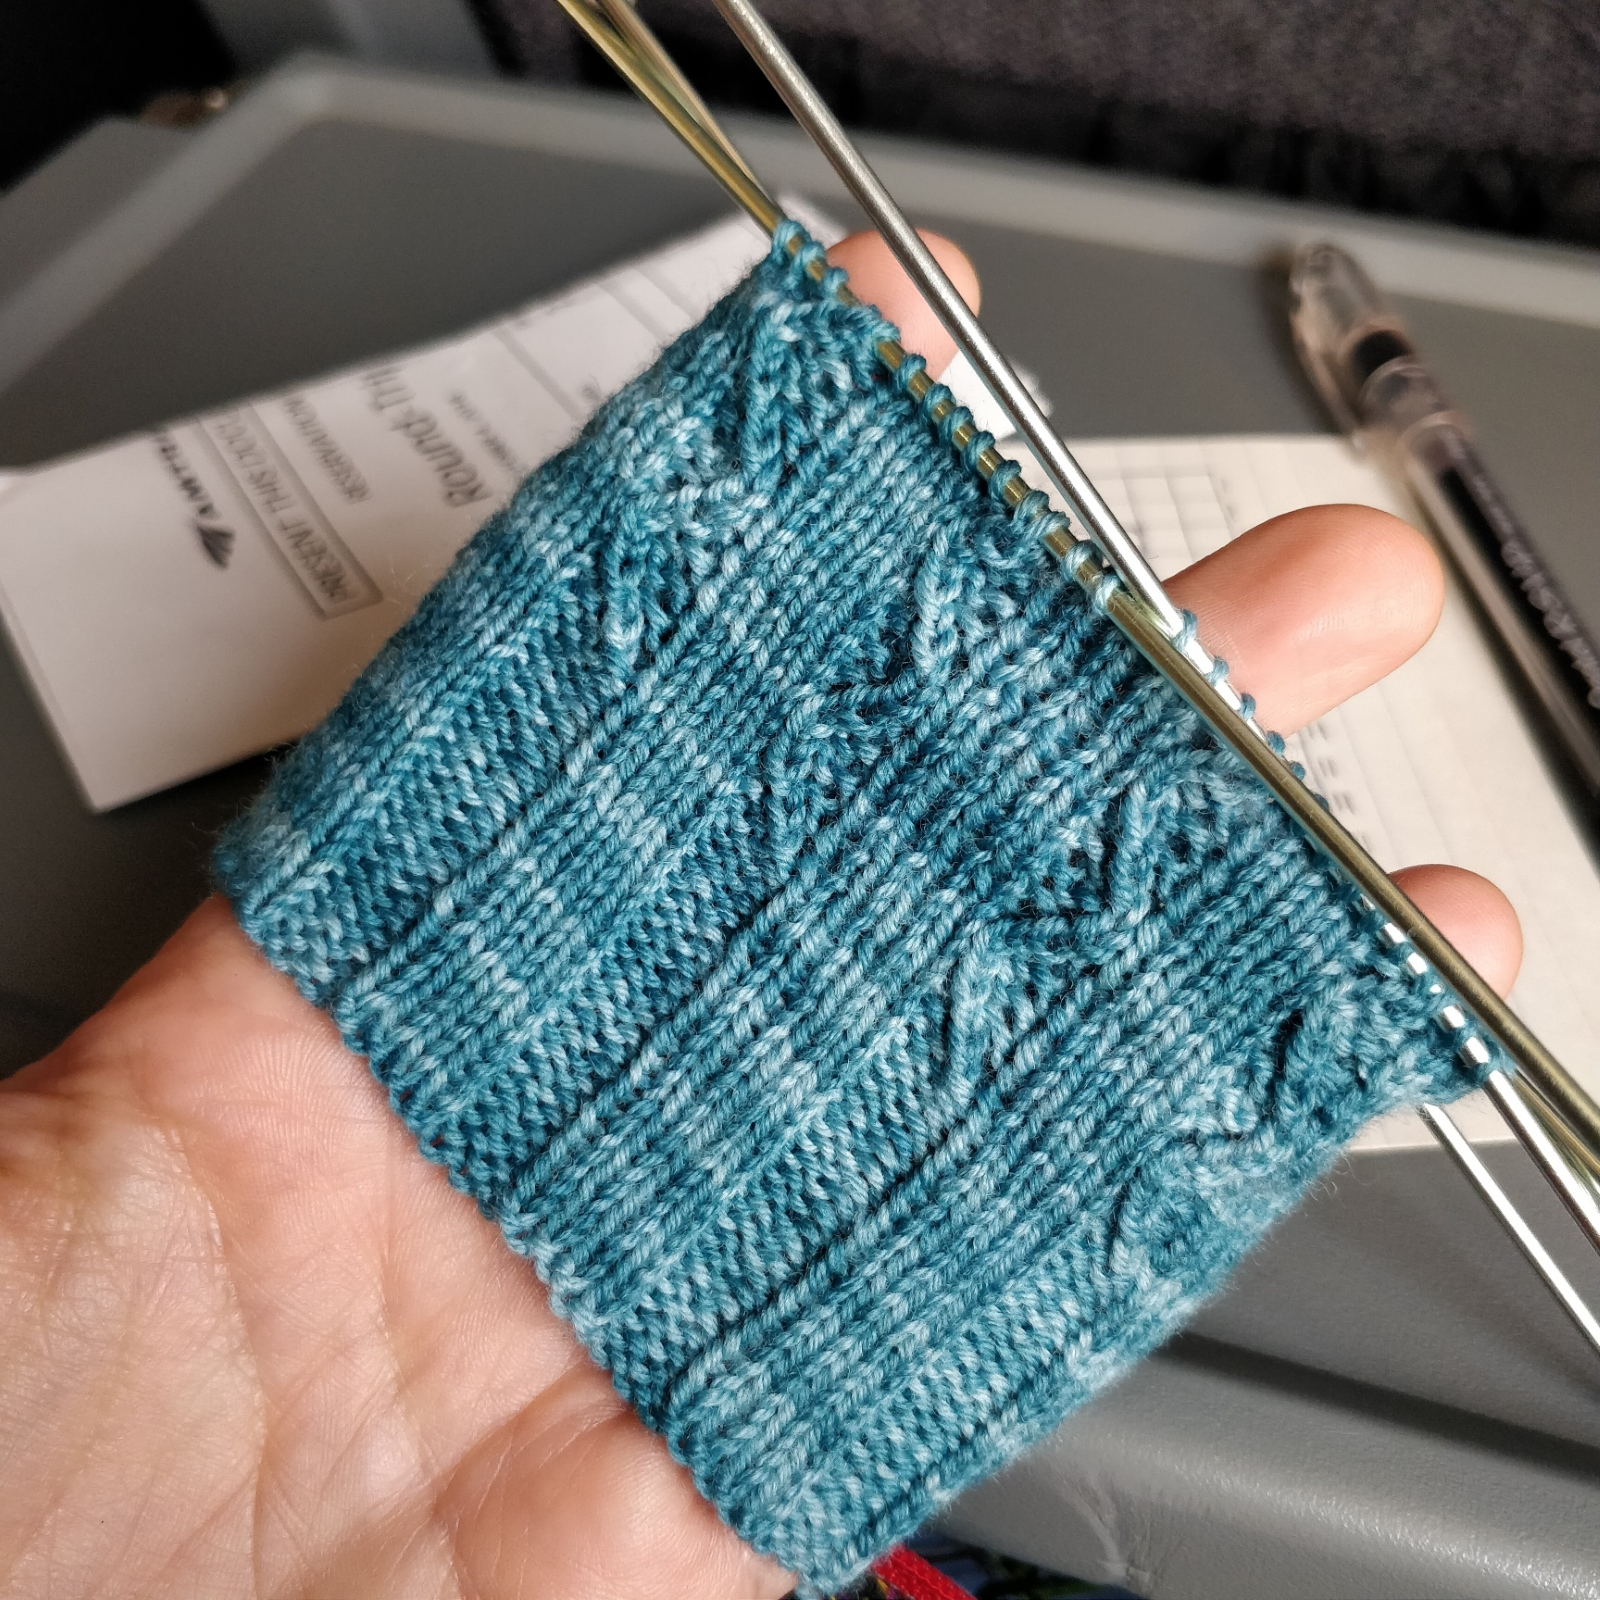 The start of a blue sock, showing a ribbed cuff and the beginning of a wavy stitch pattern.